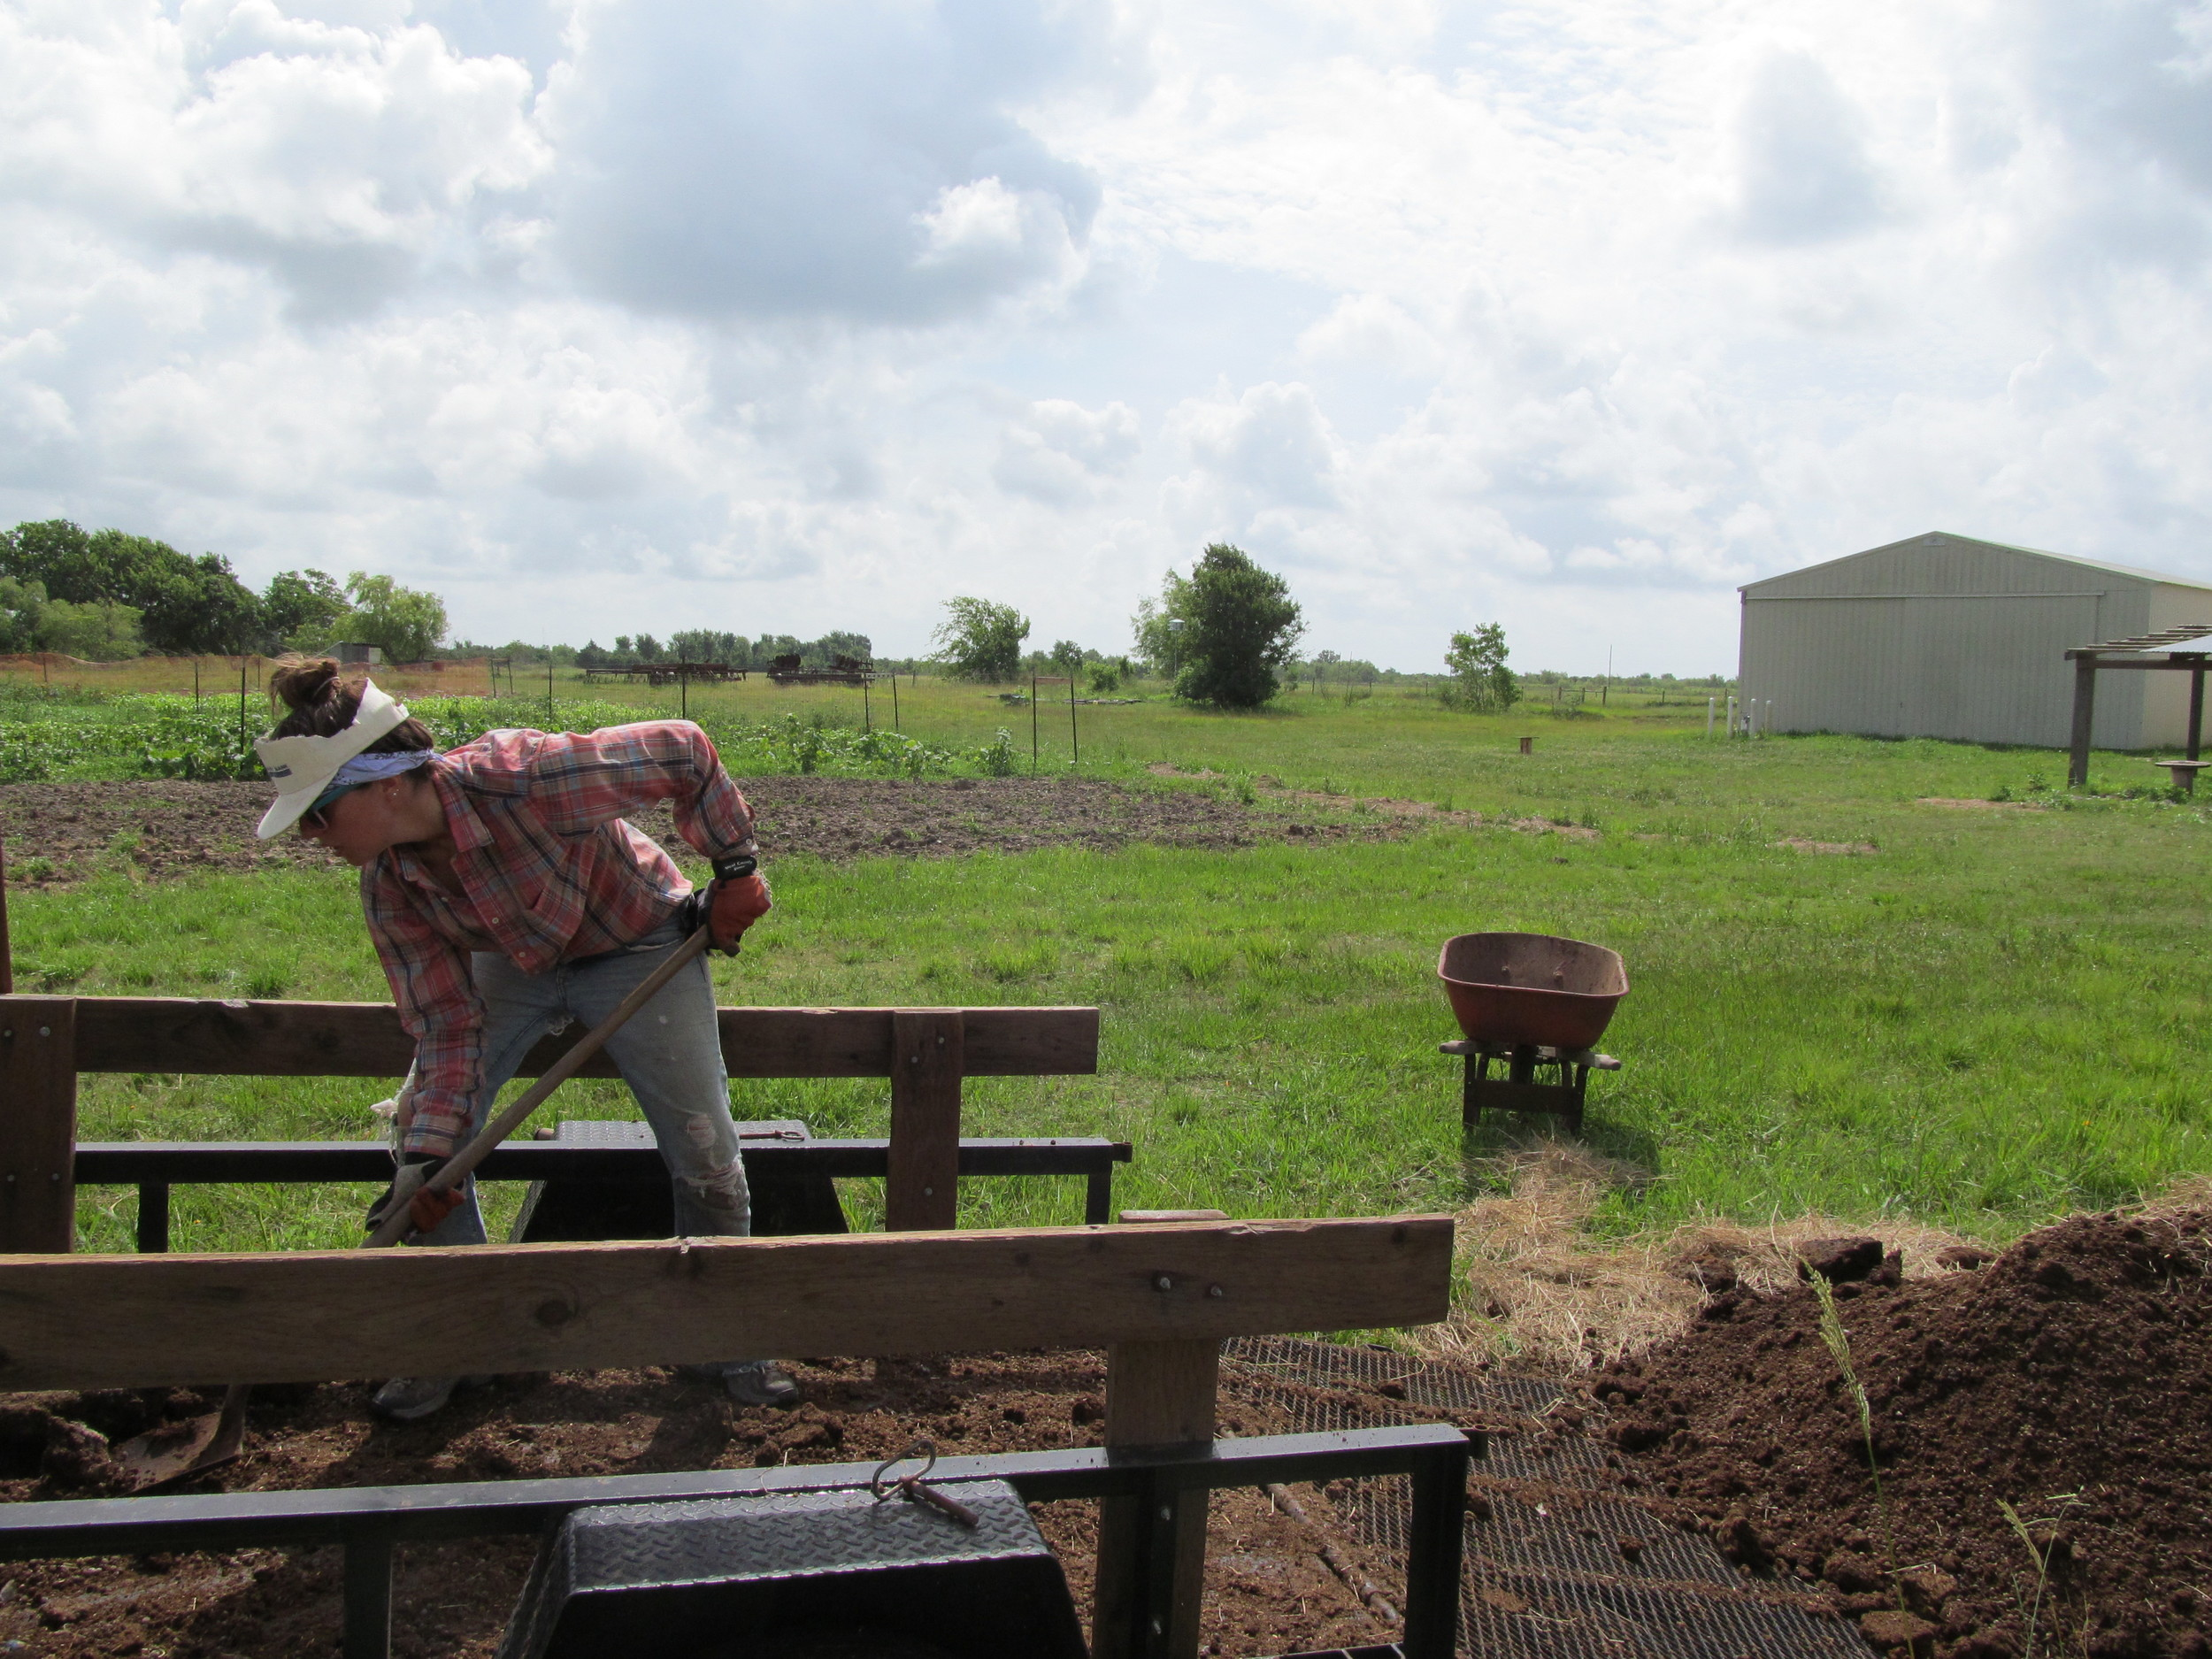 Putting the manure near the compost pile where it will steam and sit for a bit before applying it to the fields.